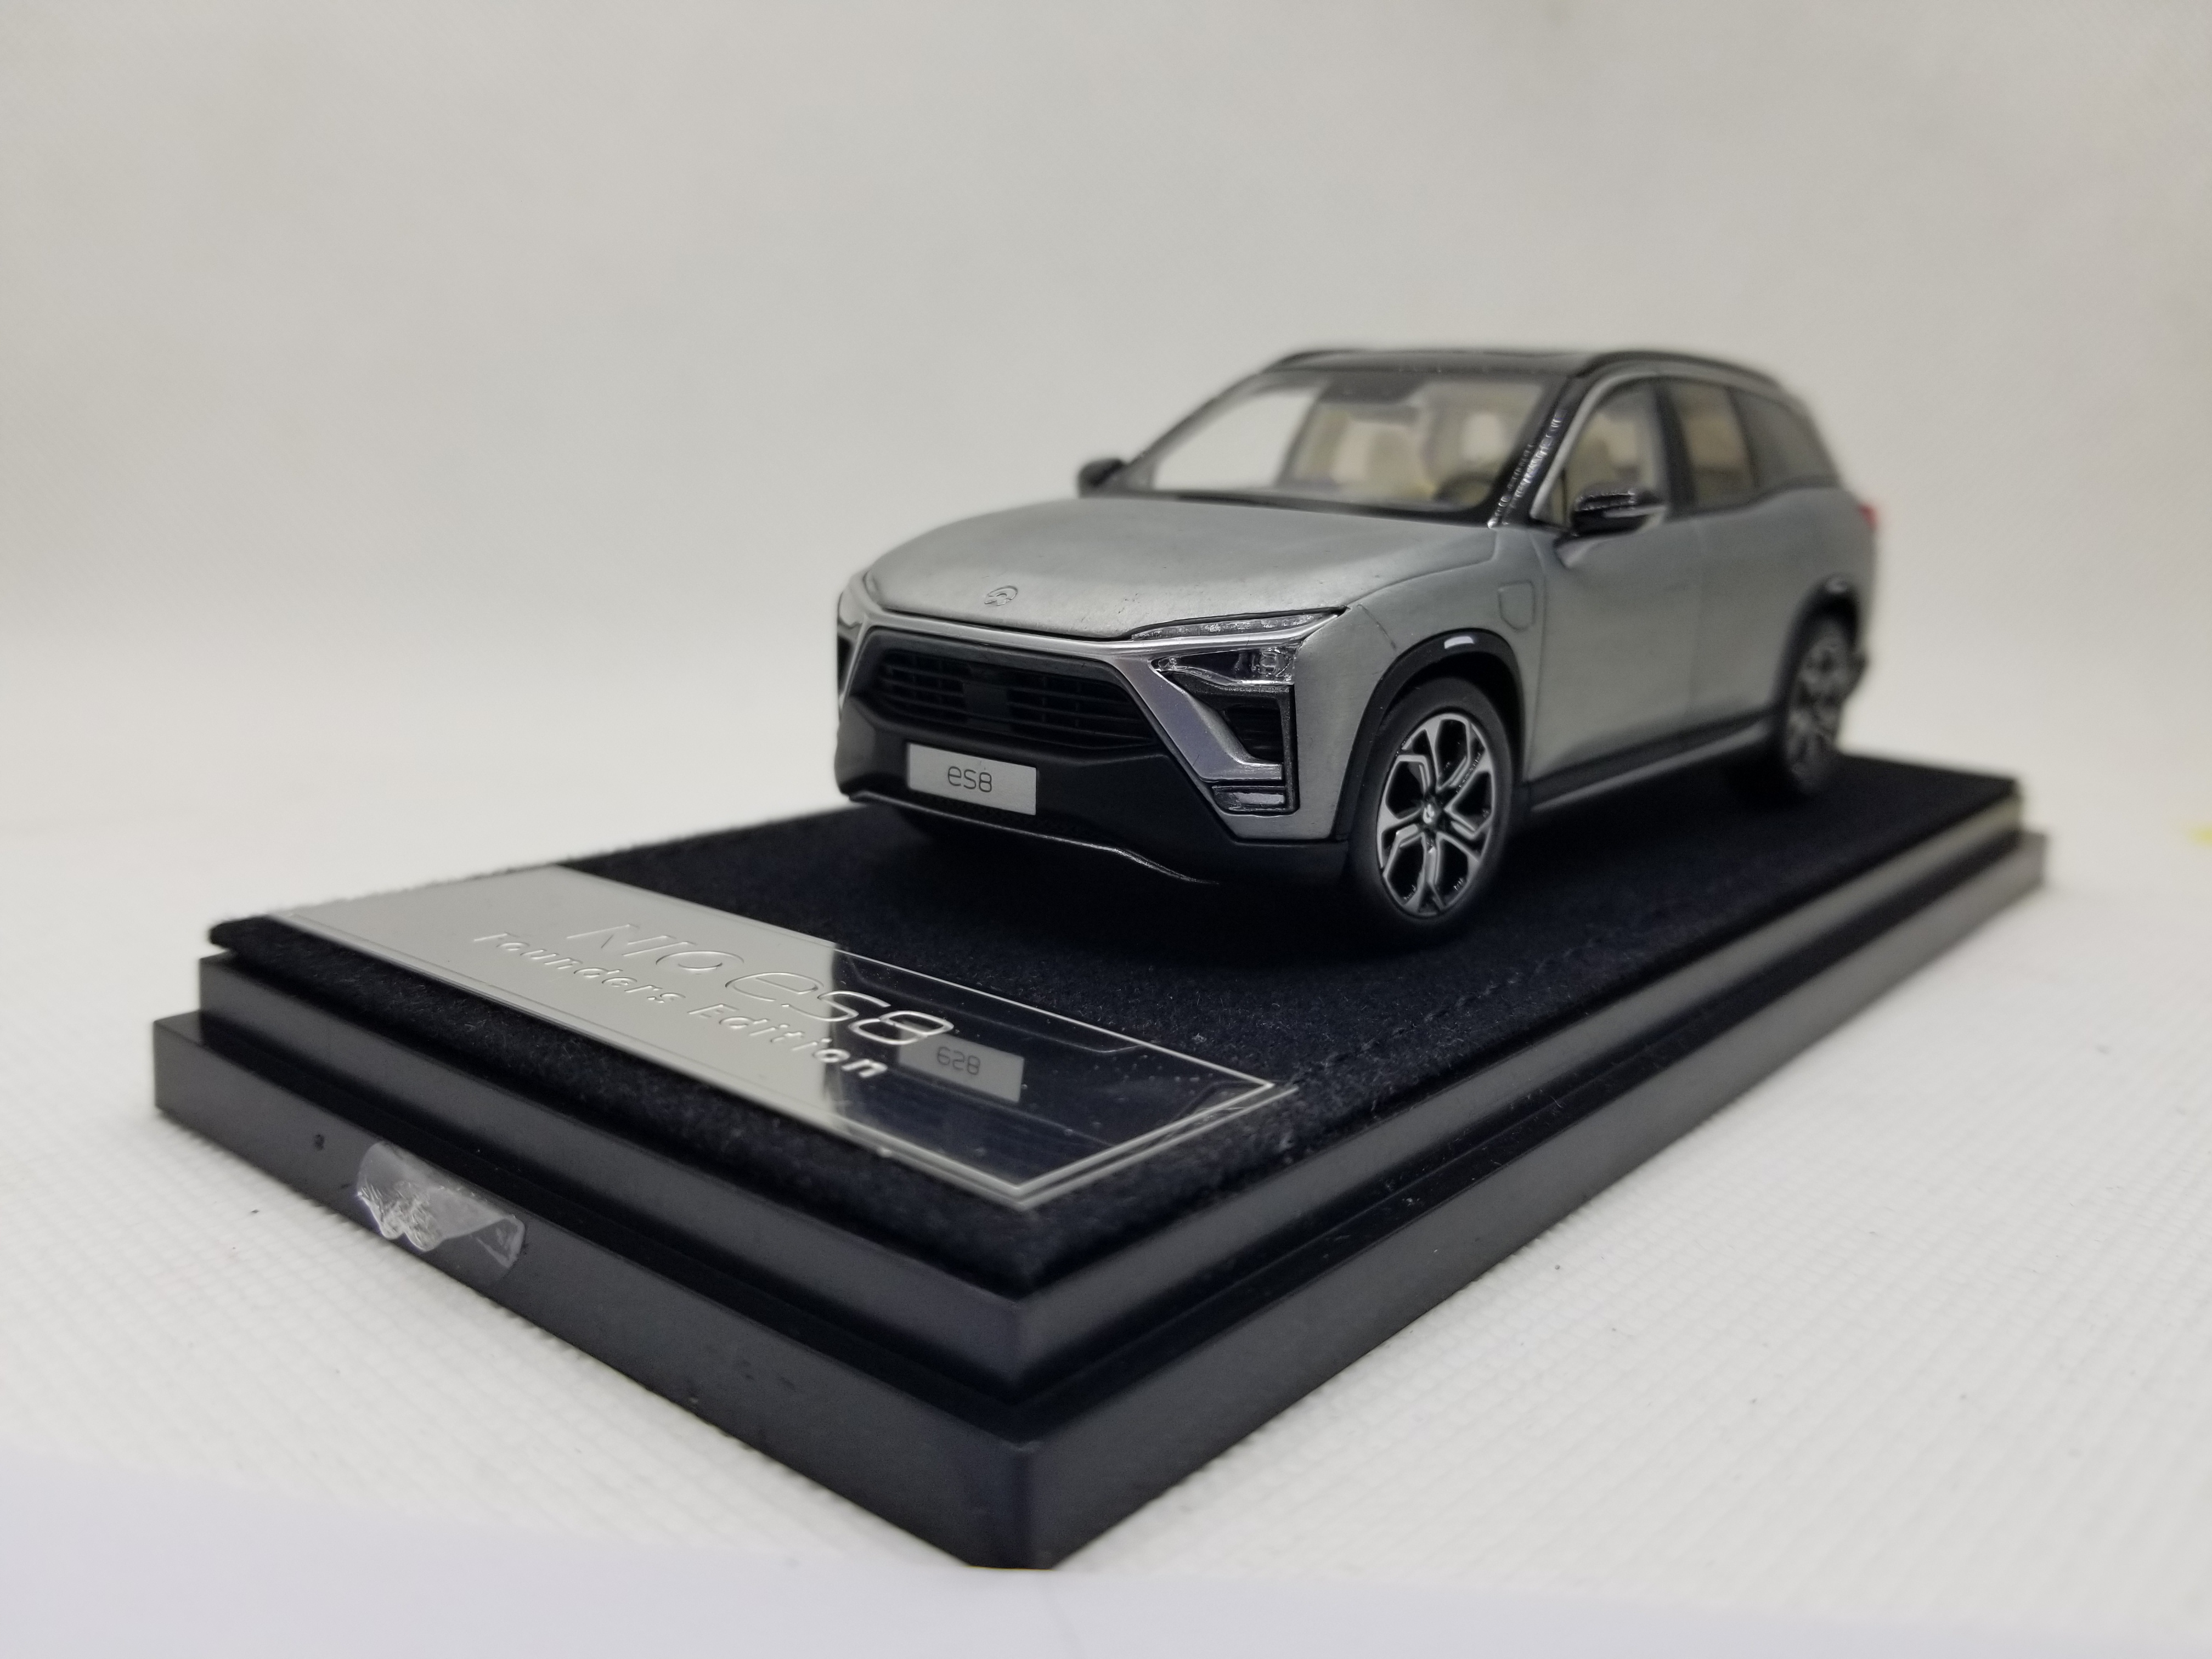 1/43 Weilai NIO ES8 2018 Blue Founder Edition SUV Electric Sport Car Alloy Toy Car, Diecast Scale Model Car, Collectible Model Car, Miniature Collection Die-cast Toy Vehicles Gifts